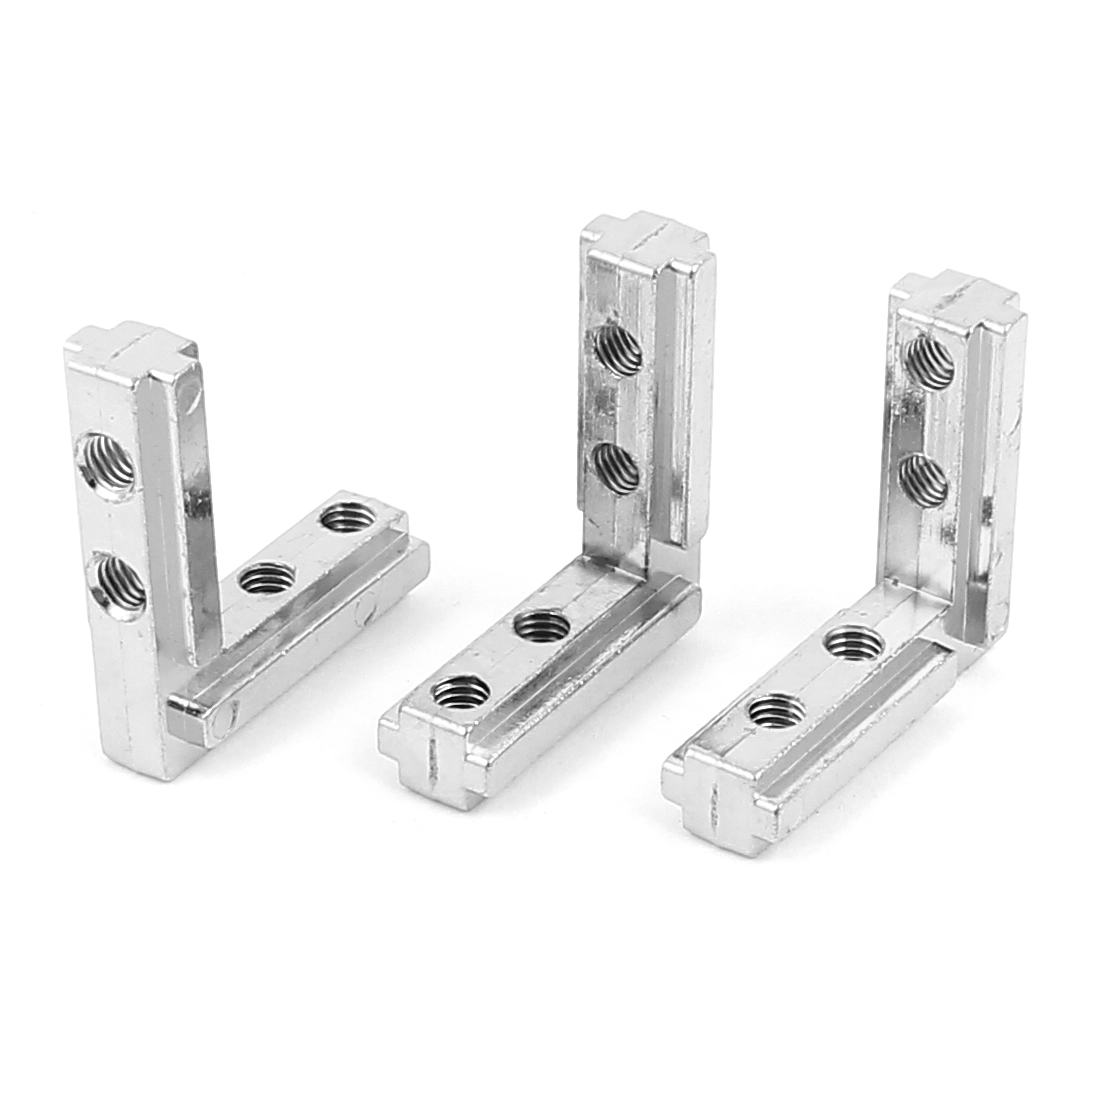 44mm x 40mm L Shape Shelf Support Corner Brace Joint Metal Angle Bracket 3Pcs